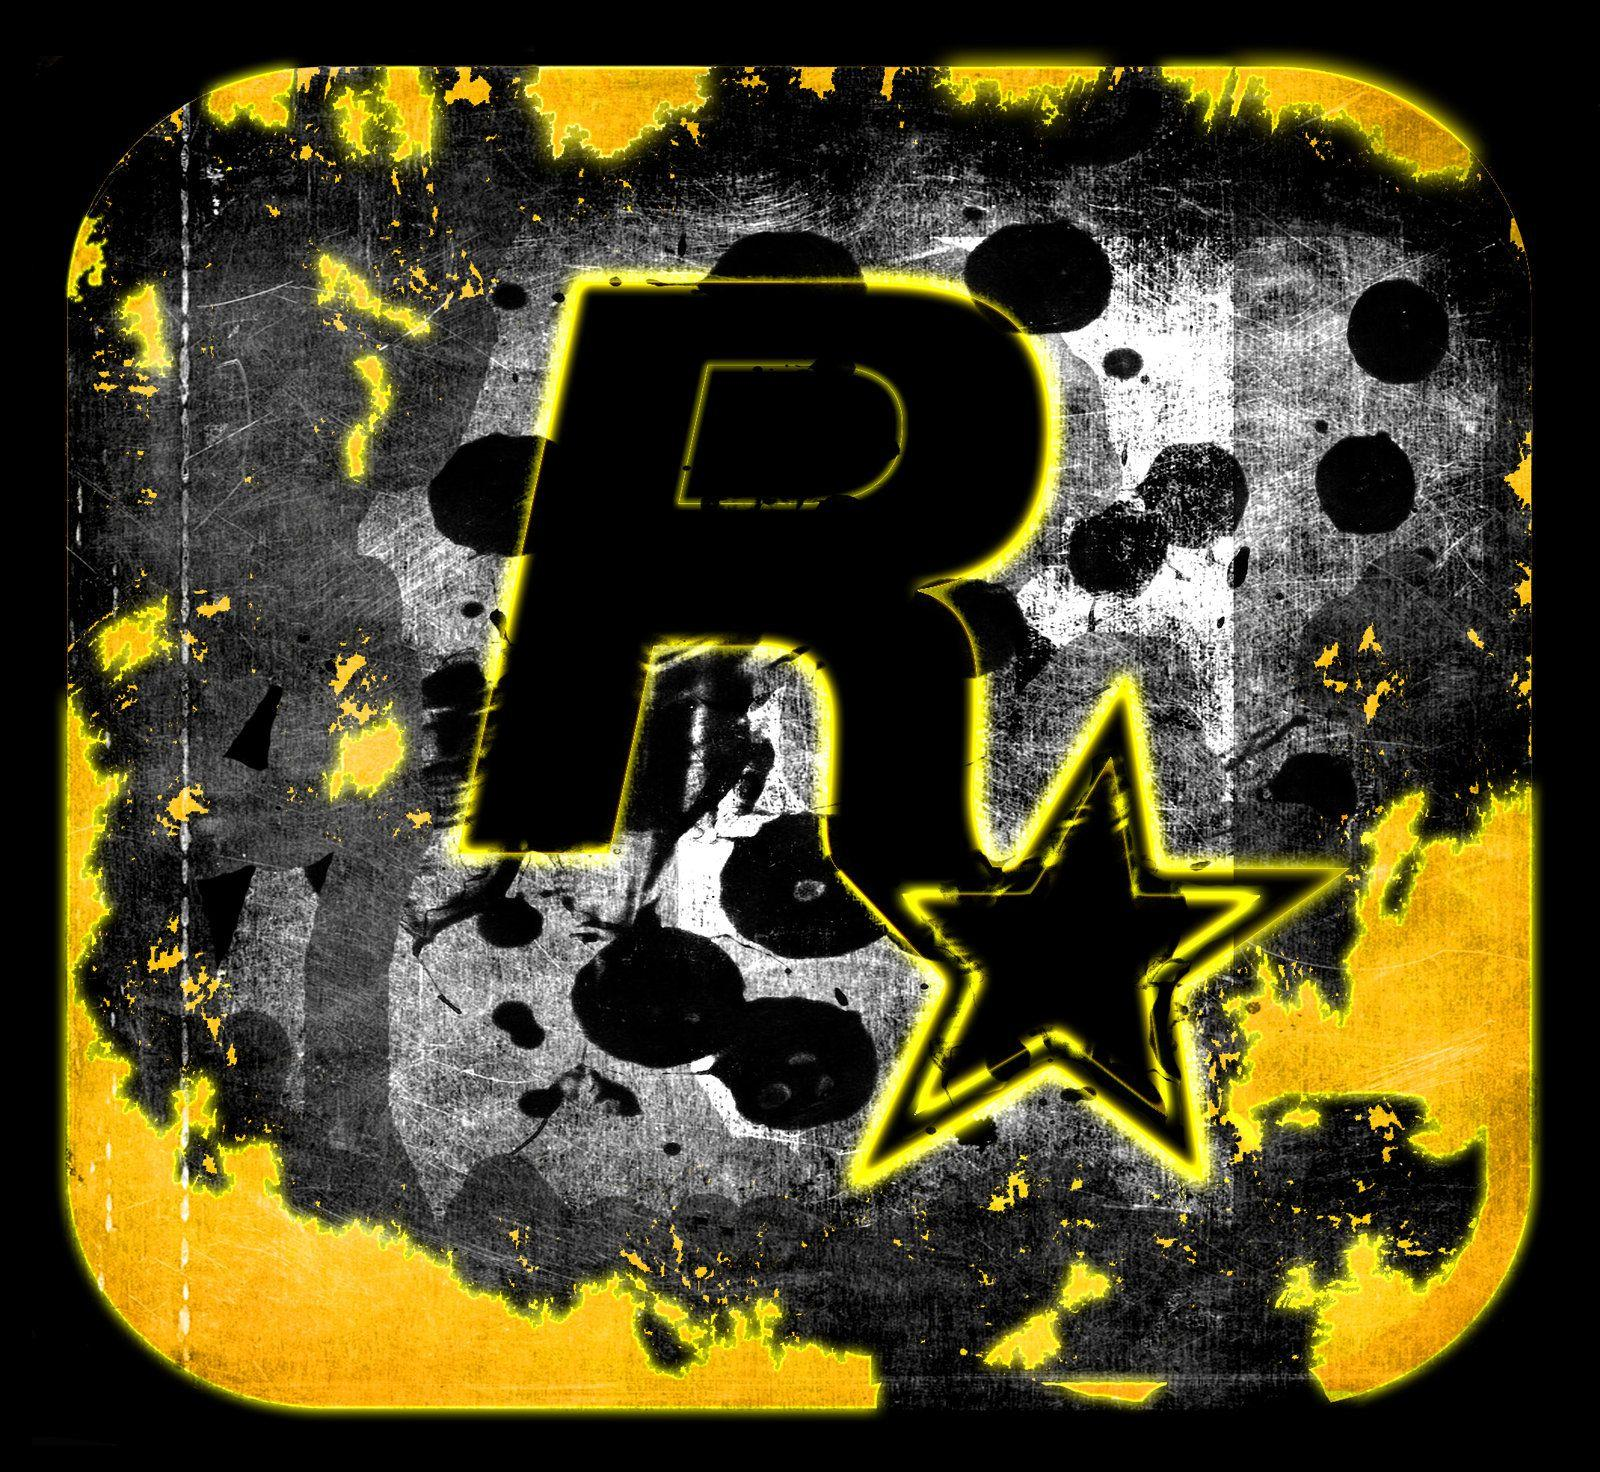 rockstar fox logo wallpapers wallpaper cave